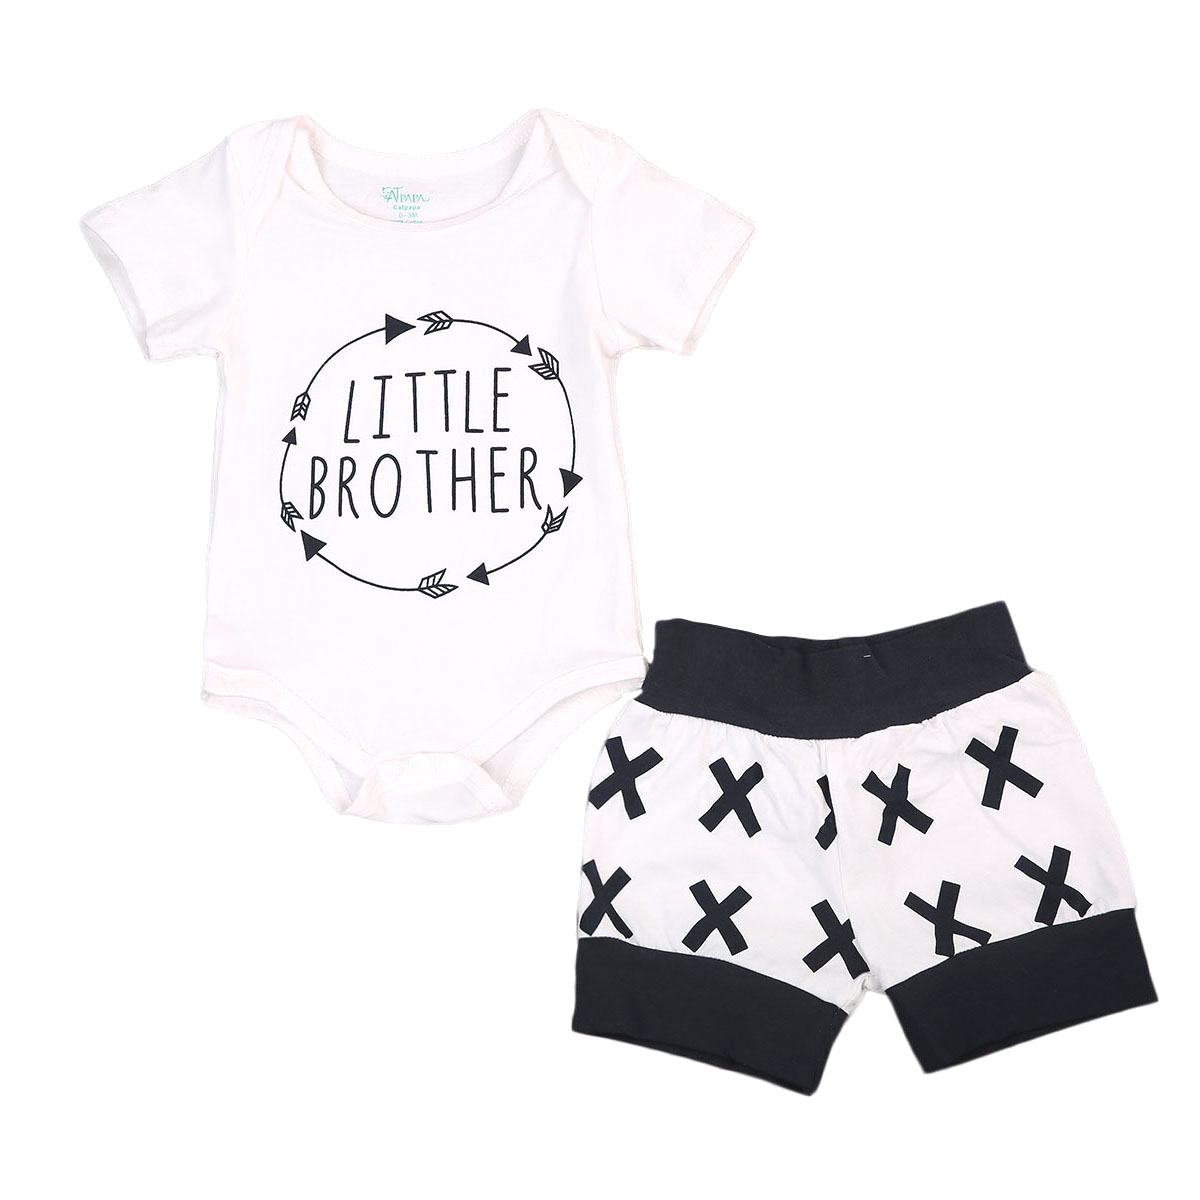 Pudcoco 2Pcs Summer Toddler Infant Baby Boys Cotton Short Sleeve O-Neck Bodysuit Shorts Pants Outfits Set 0-24 Months Helen115